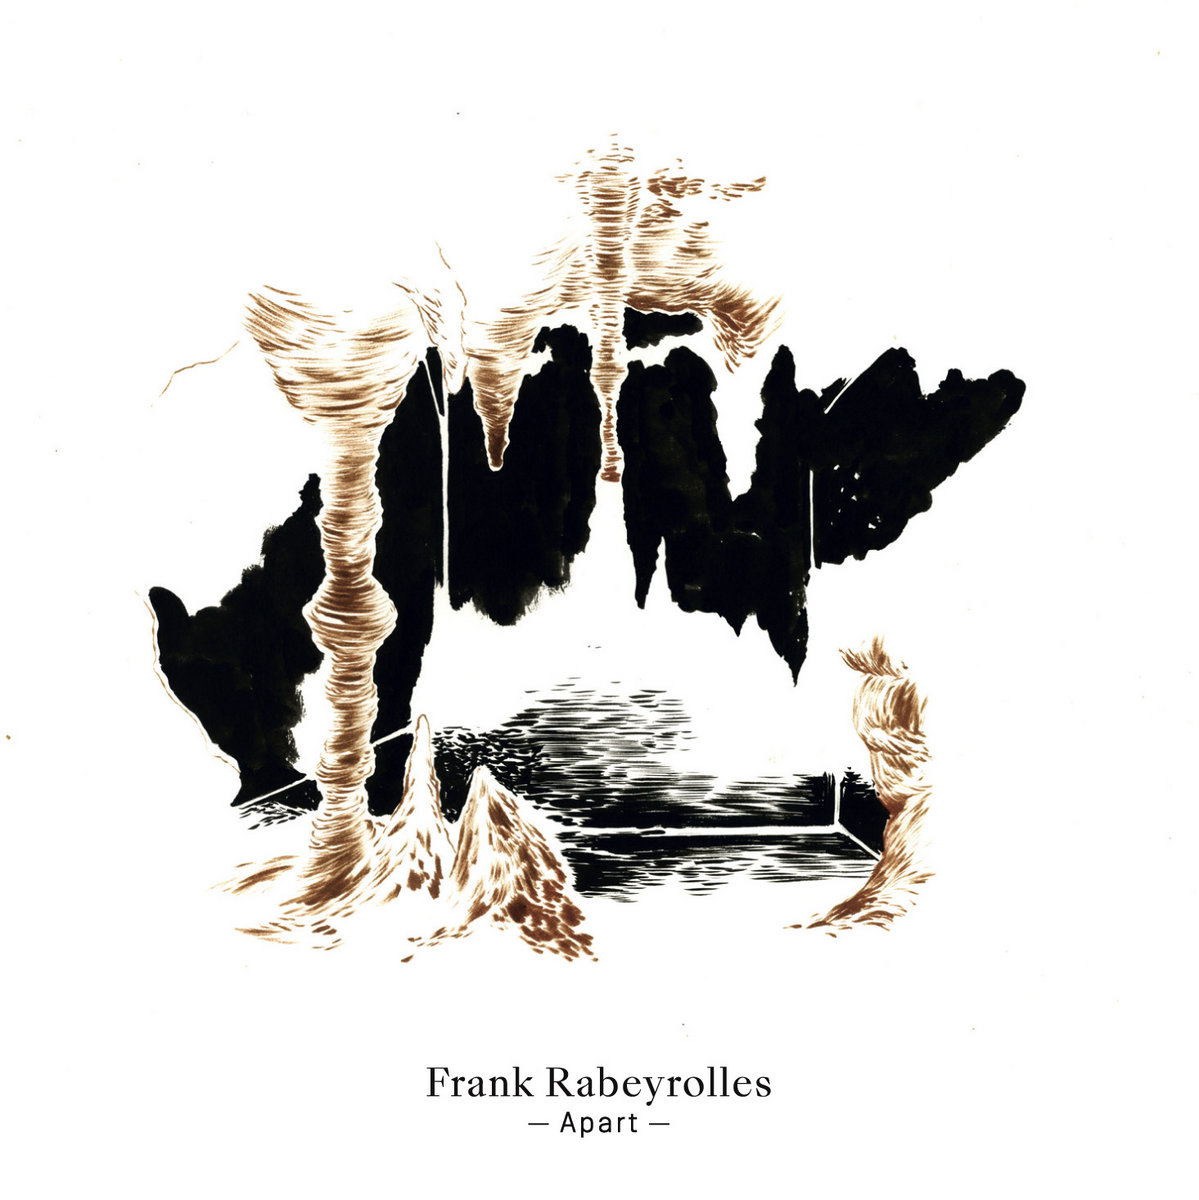 Frank Rabeyrolles artwork